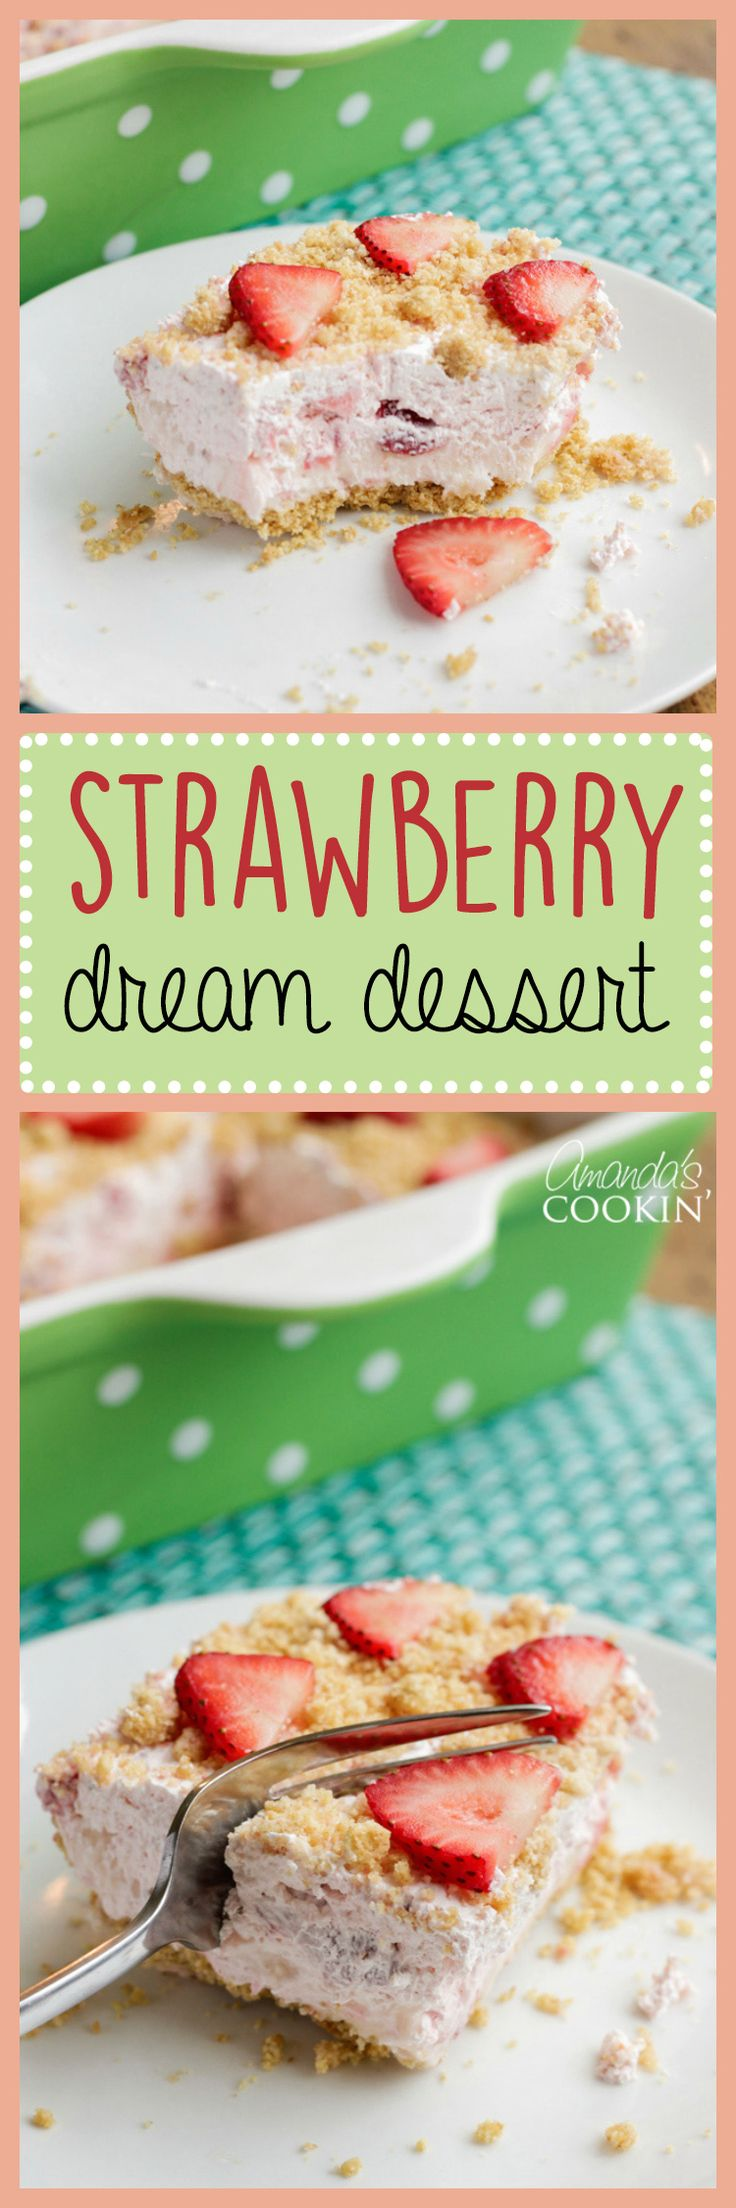 his strawberry dream dessert is just as amazing as its pineapple cousin and if you're a fan of desserts with strawberries like I am you'll definitely want to try it today!